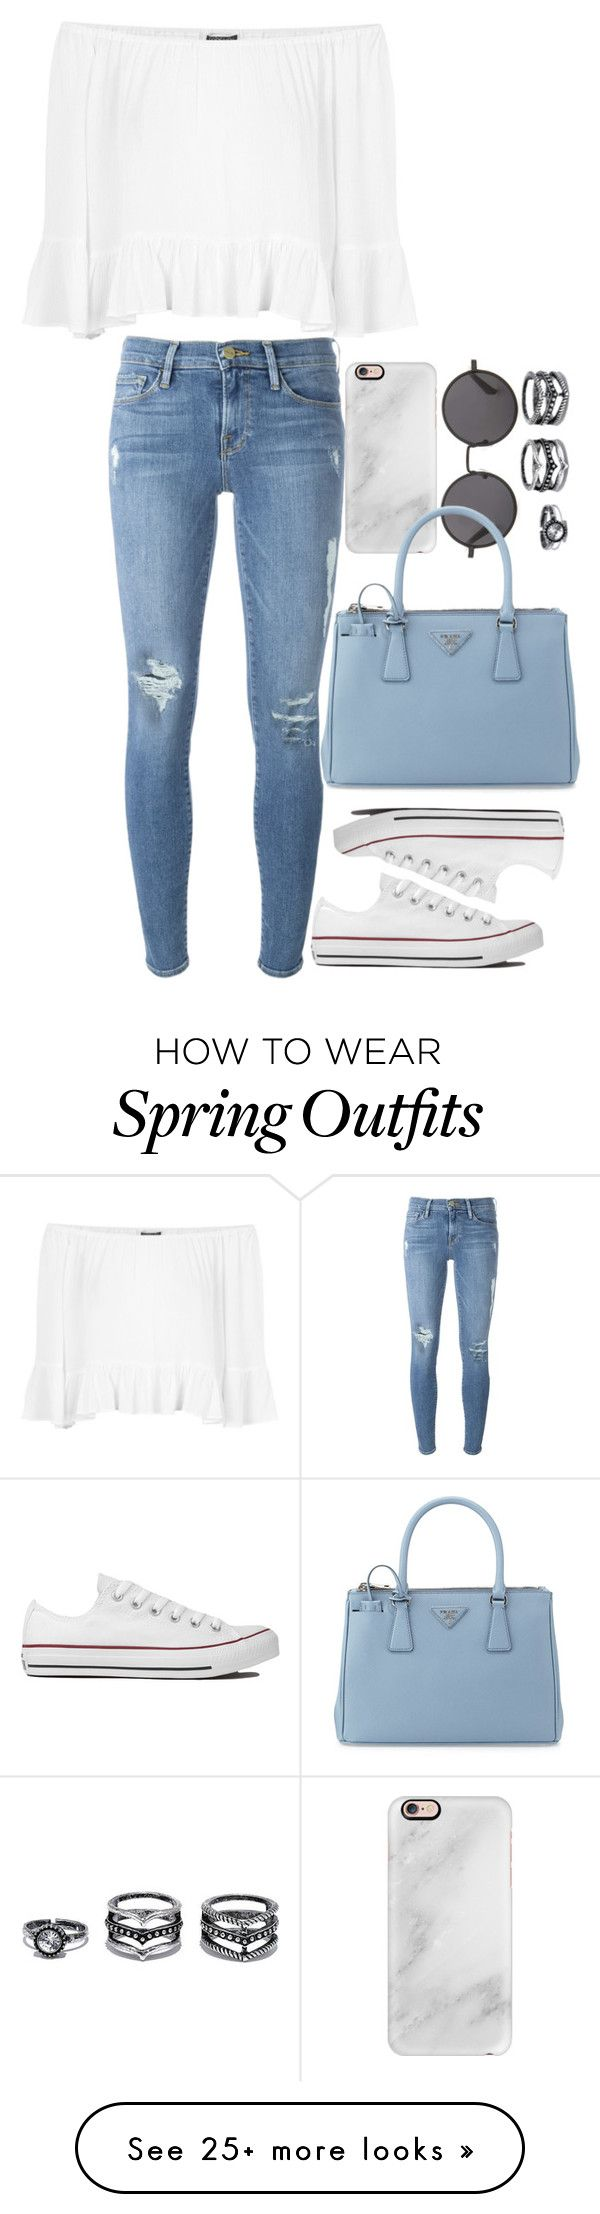 """""""spring outfit"""" by ariaaax on Polyvore featuring Topshop, Frame Denim, The Row, Casetify, Converse, LULUS and Prada                                                                                                                                                                                 More"""